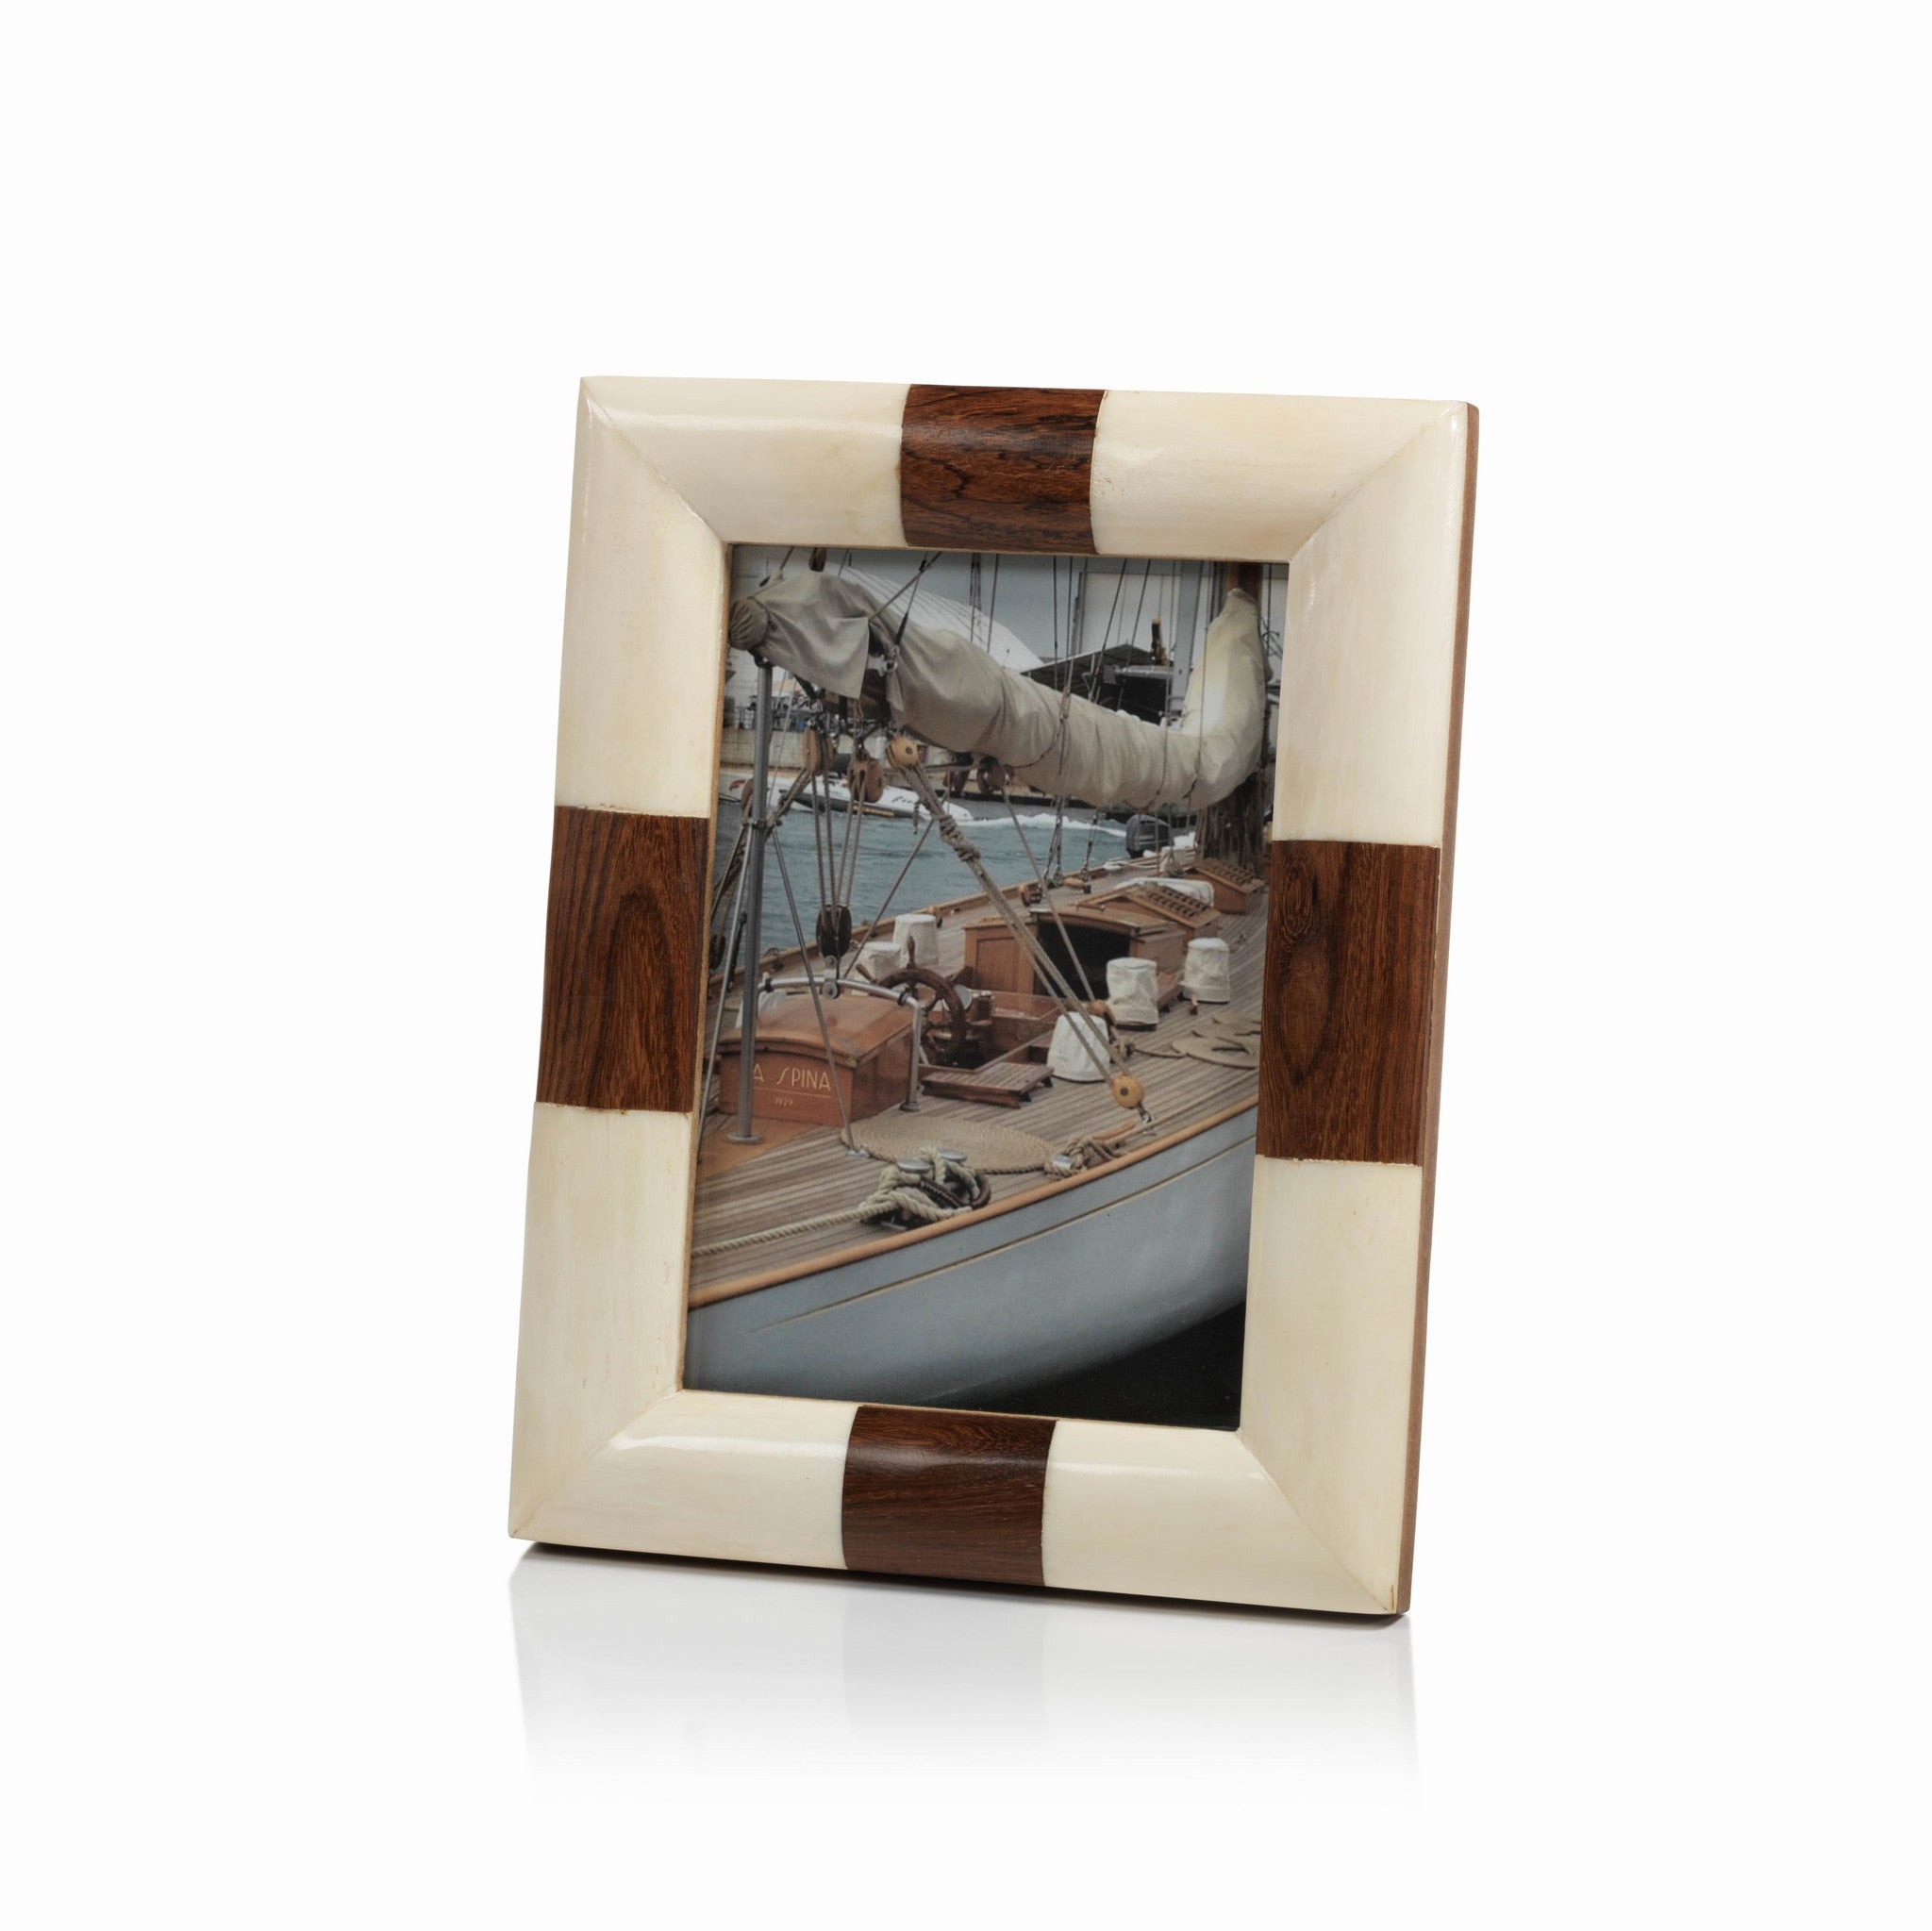 Kenya White Bone Photo Frame - CARLYLE AVENUE